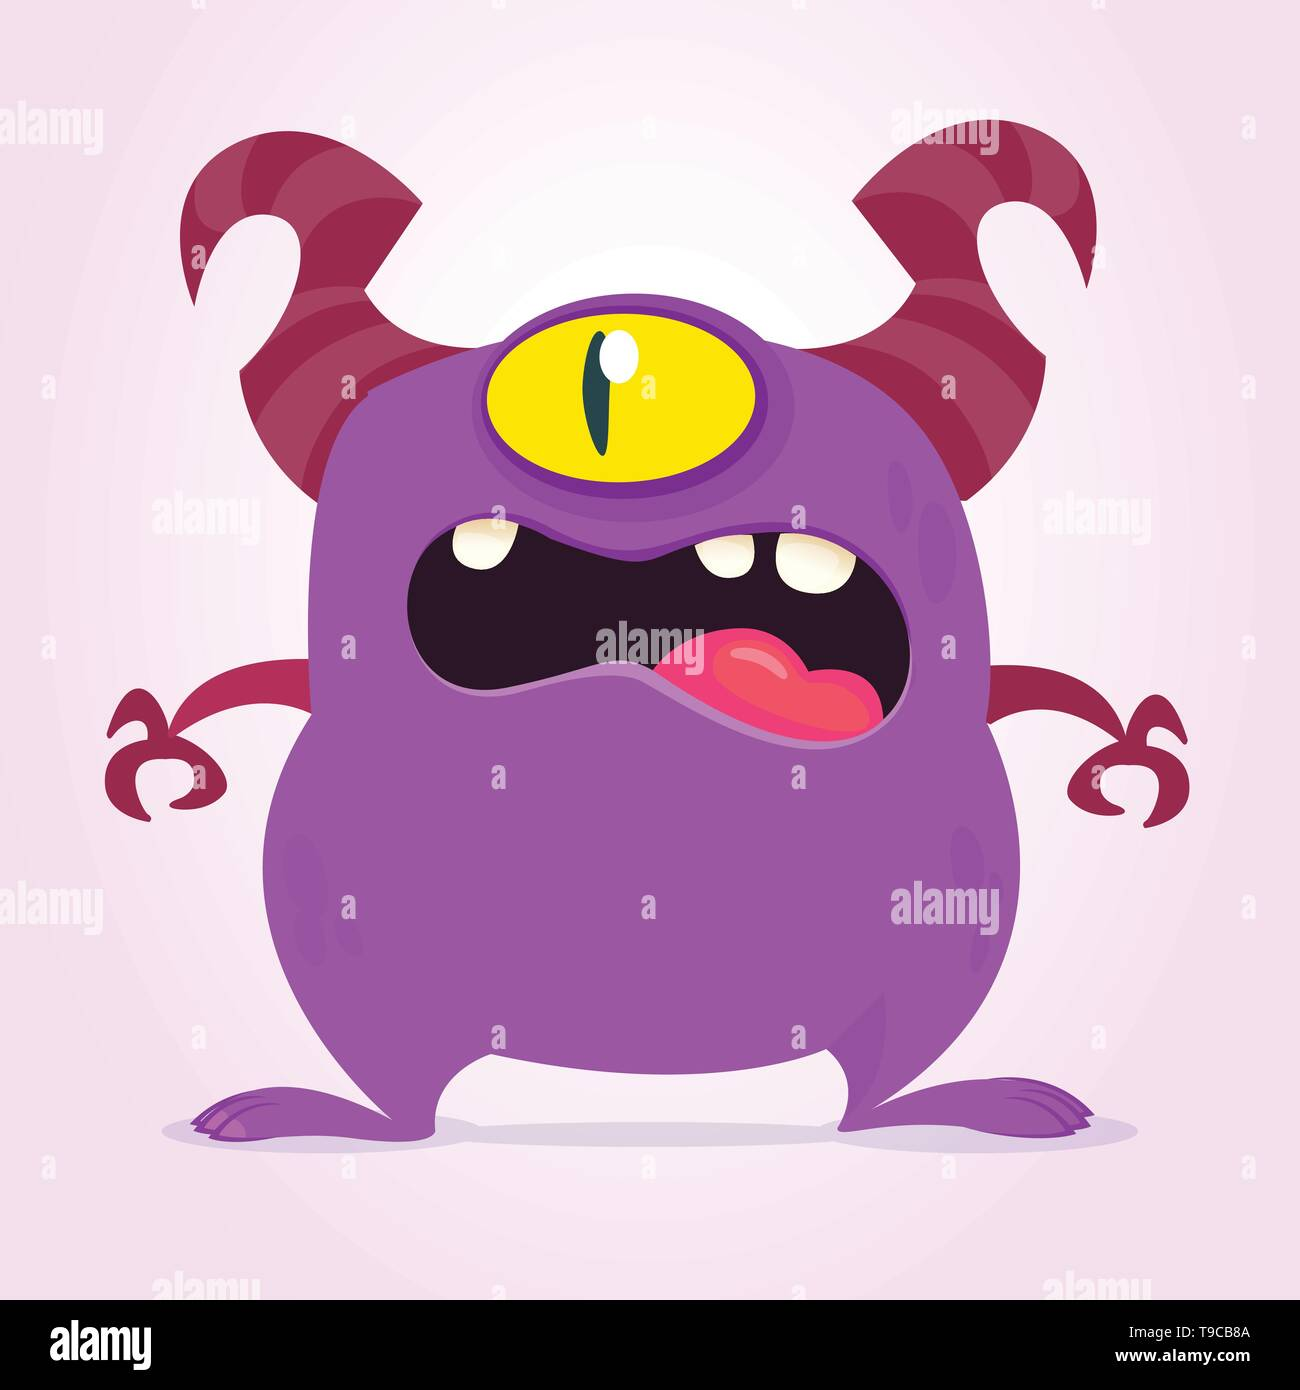 Angry cartoon monster with one eye. Vector purple monster illustration. Halloween design - Stock Image